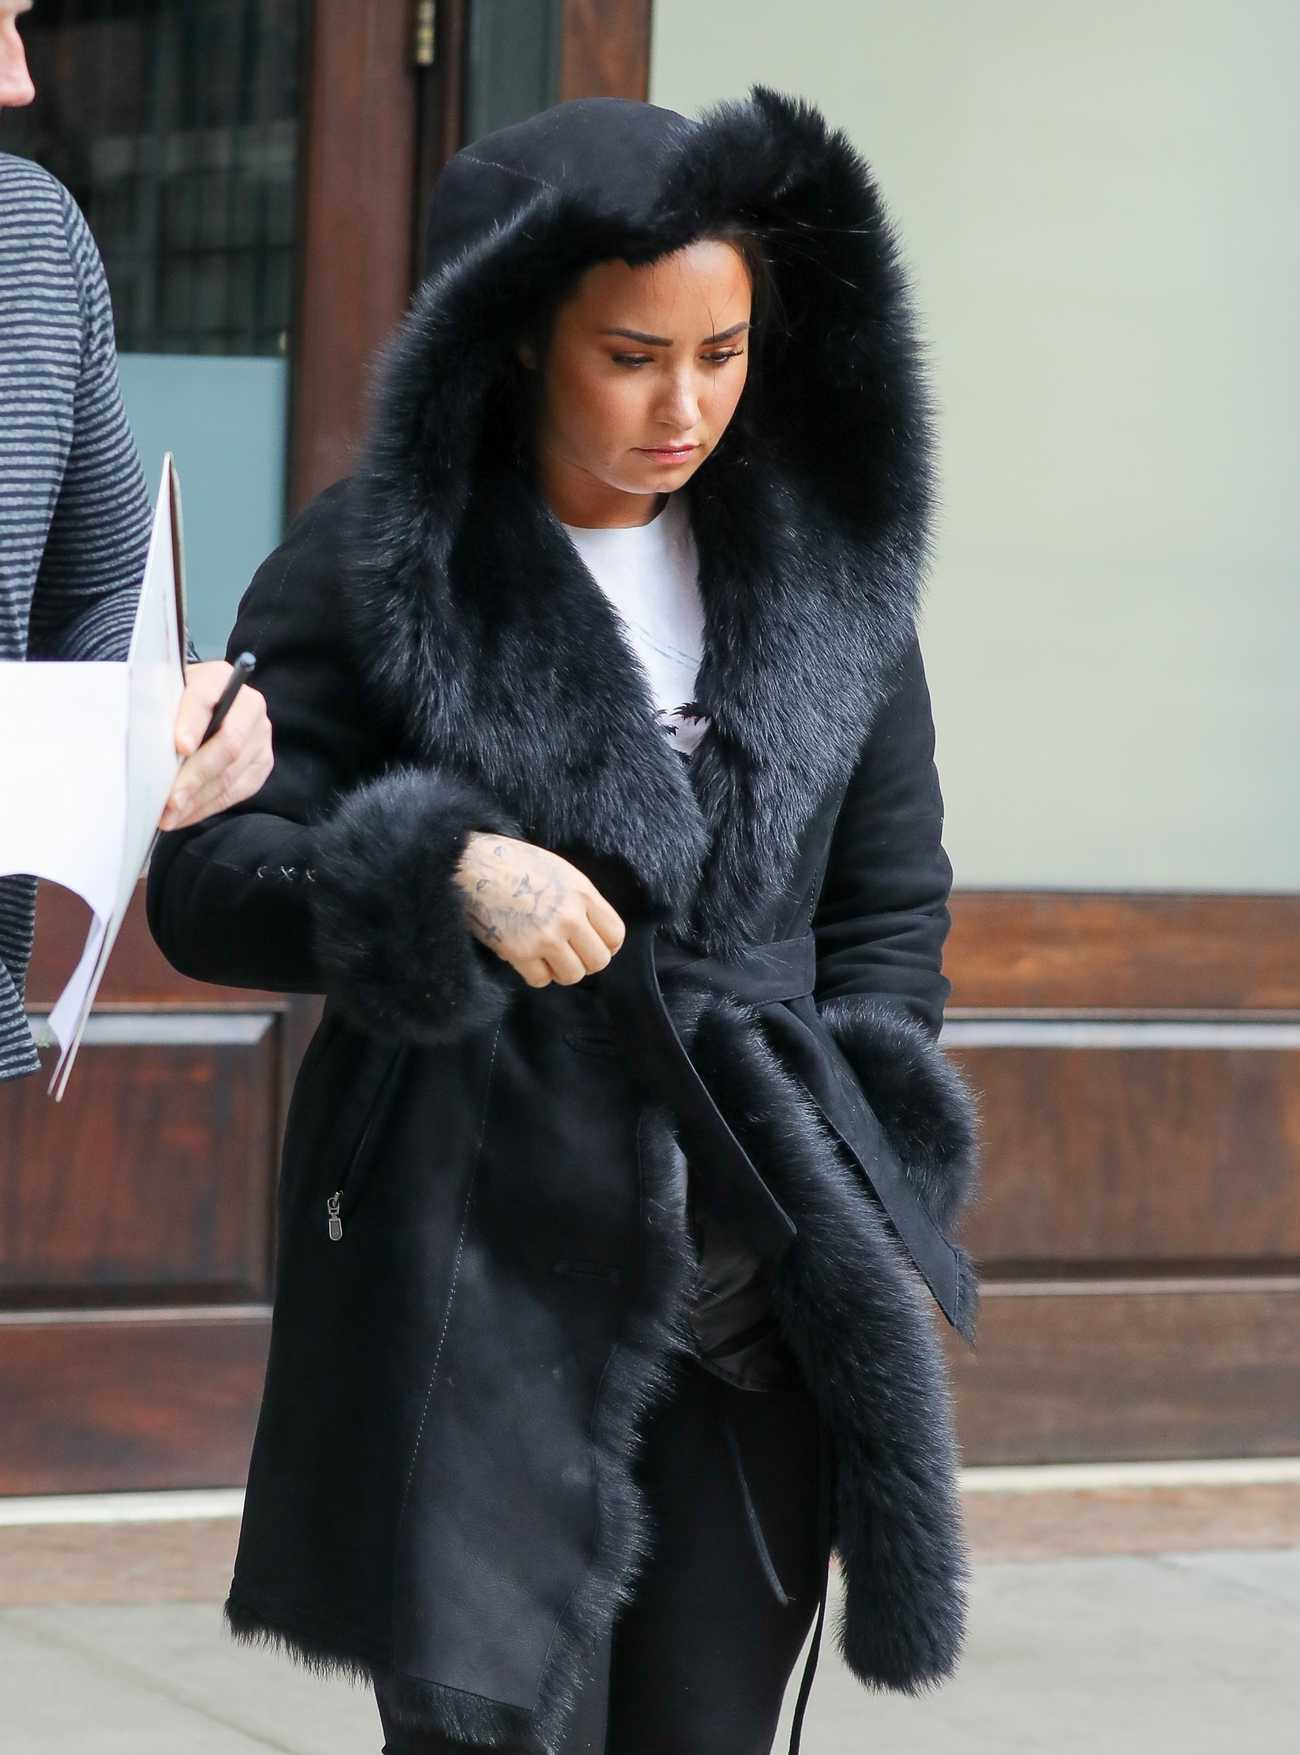 http://demigallery.com/albums/userpics/10001/Demi_Lovato_-_Leaving_her_hotel_in_NYC_on_March_152C_2018-02.jpg